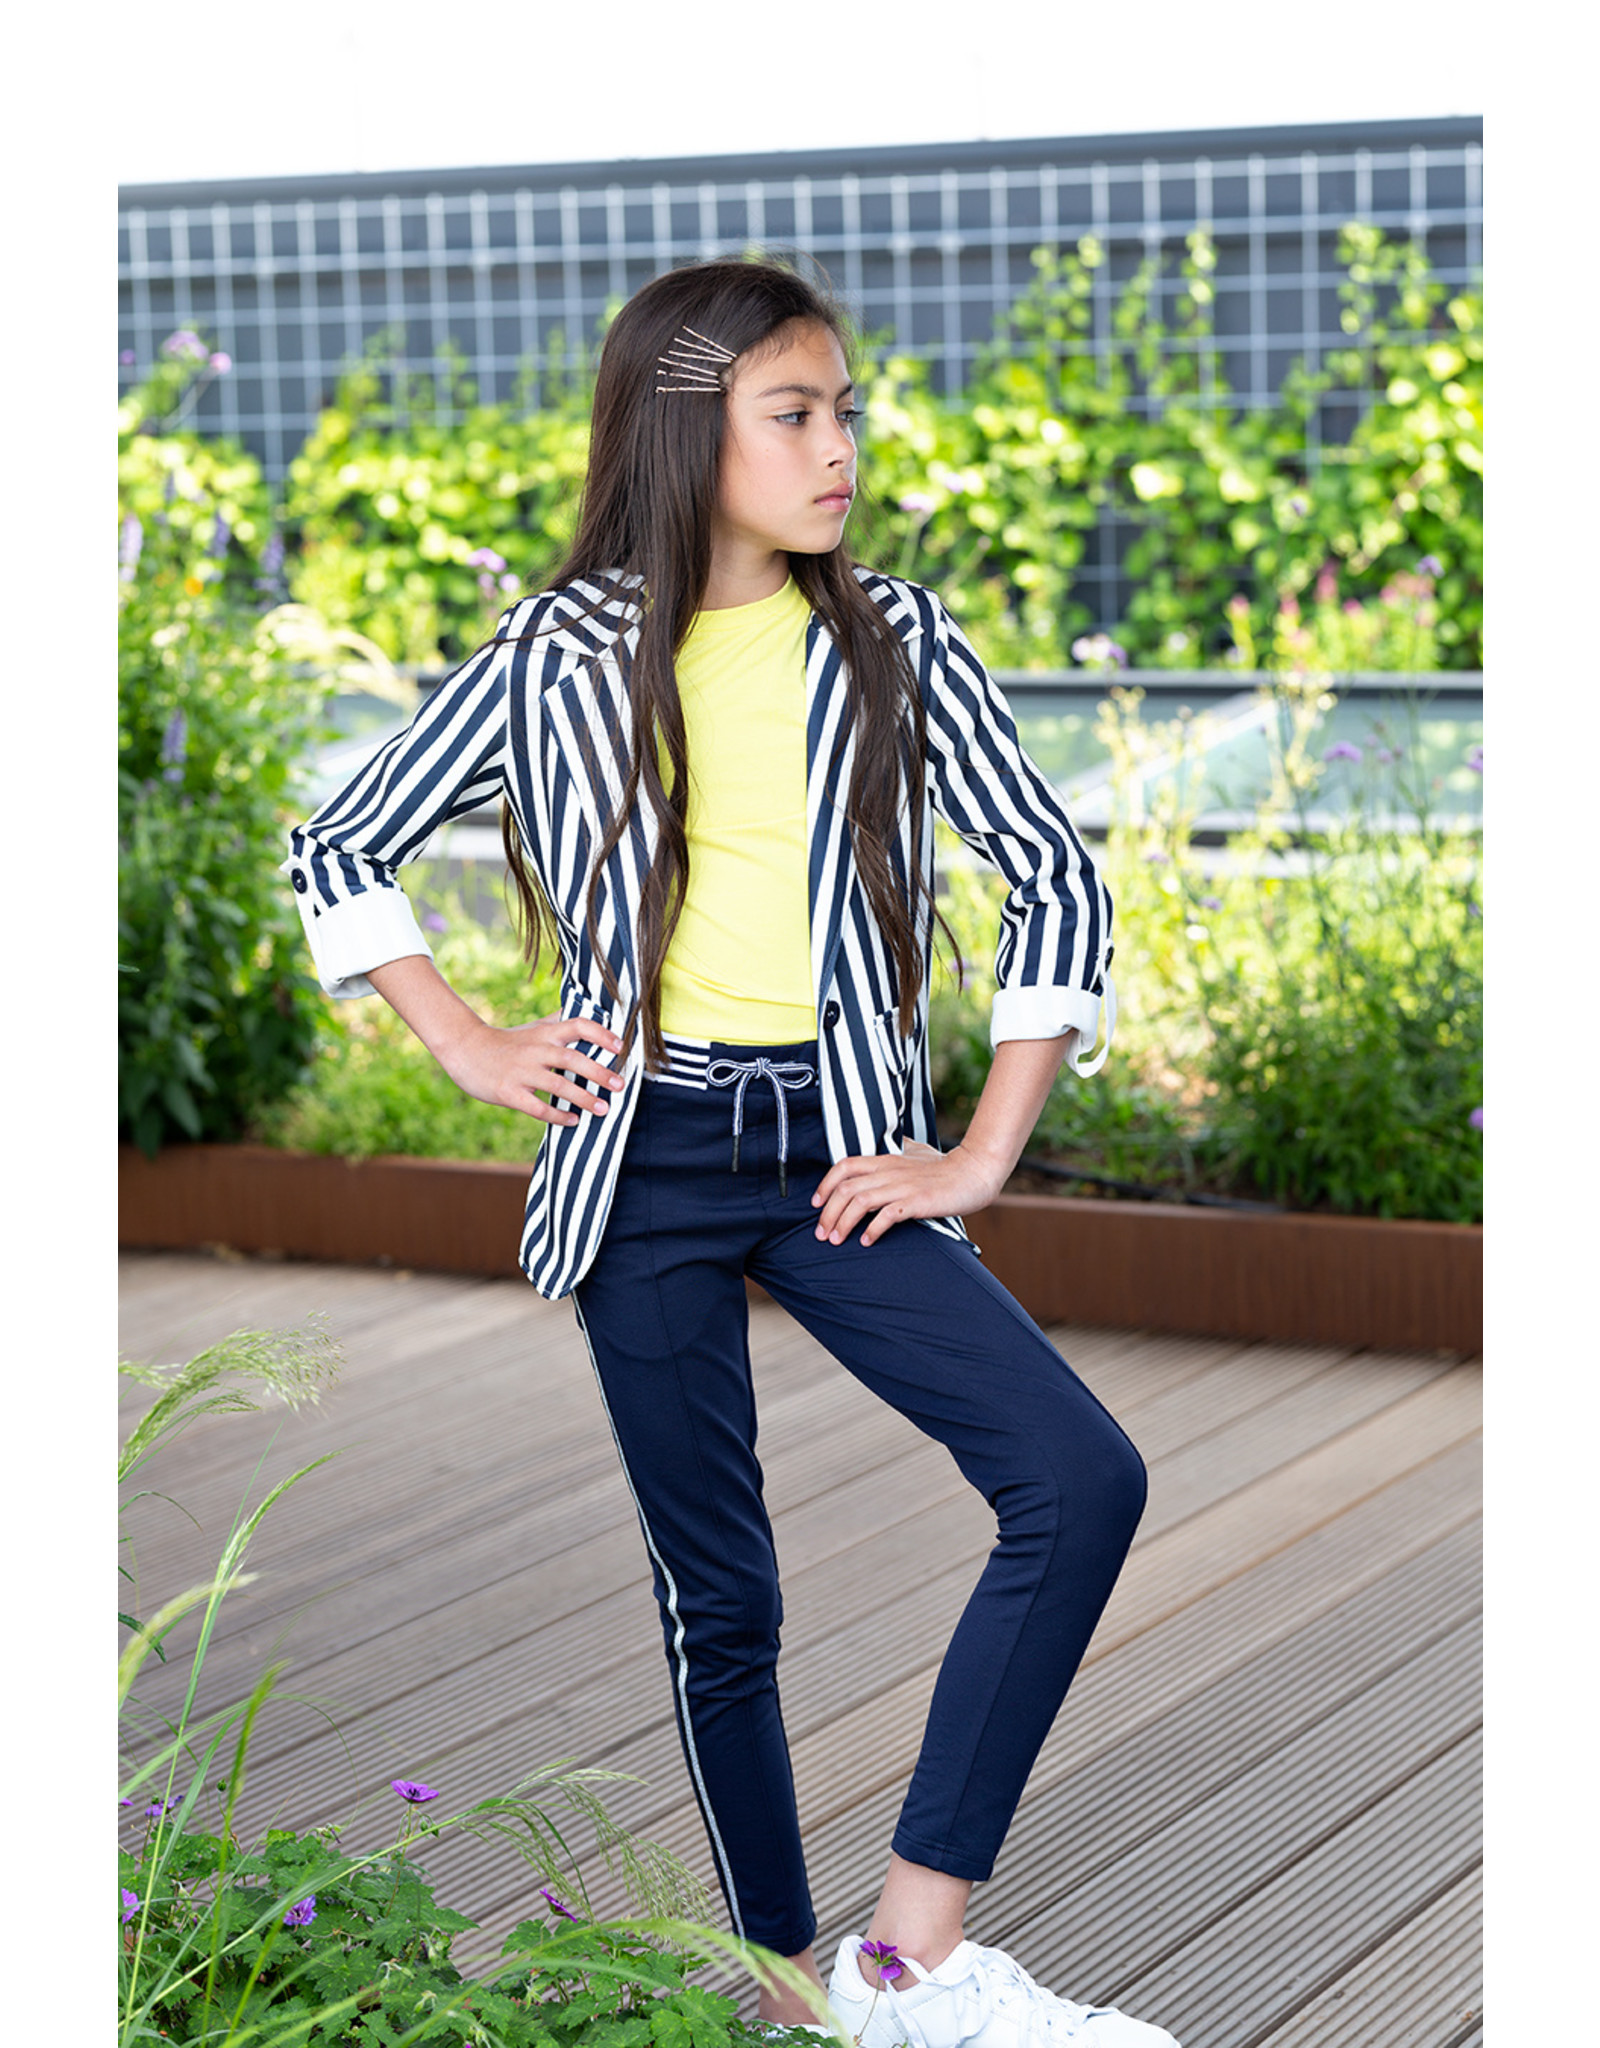 NoBell NoBell Dippy blazer stripes with rolled up sleeves